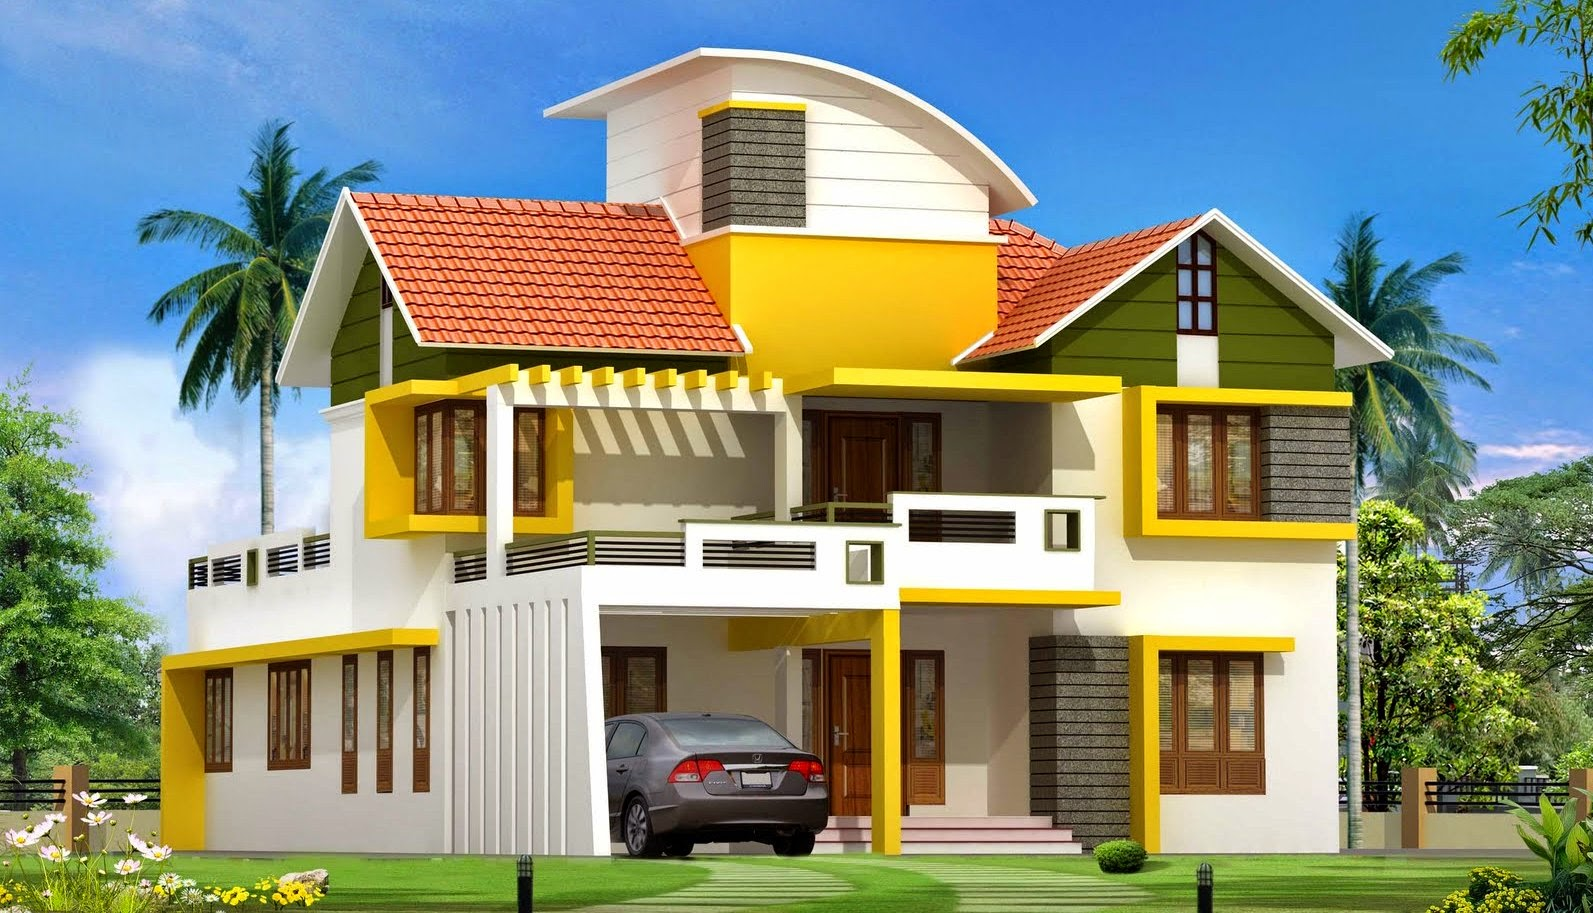 Kerala Home Design New Modern Houses home kitchen interior design photos ideas  full